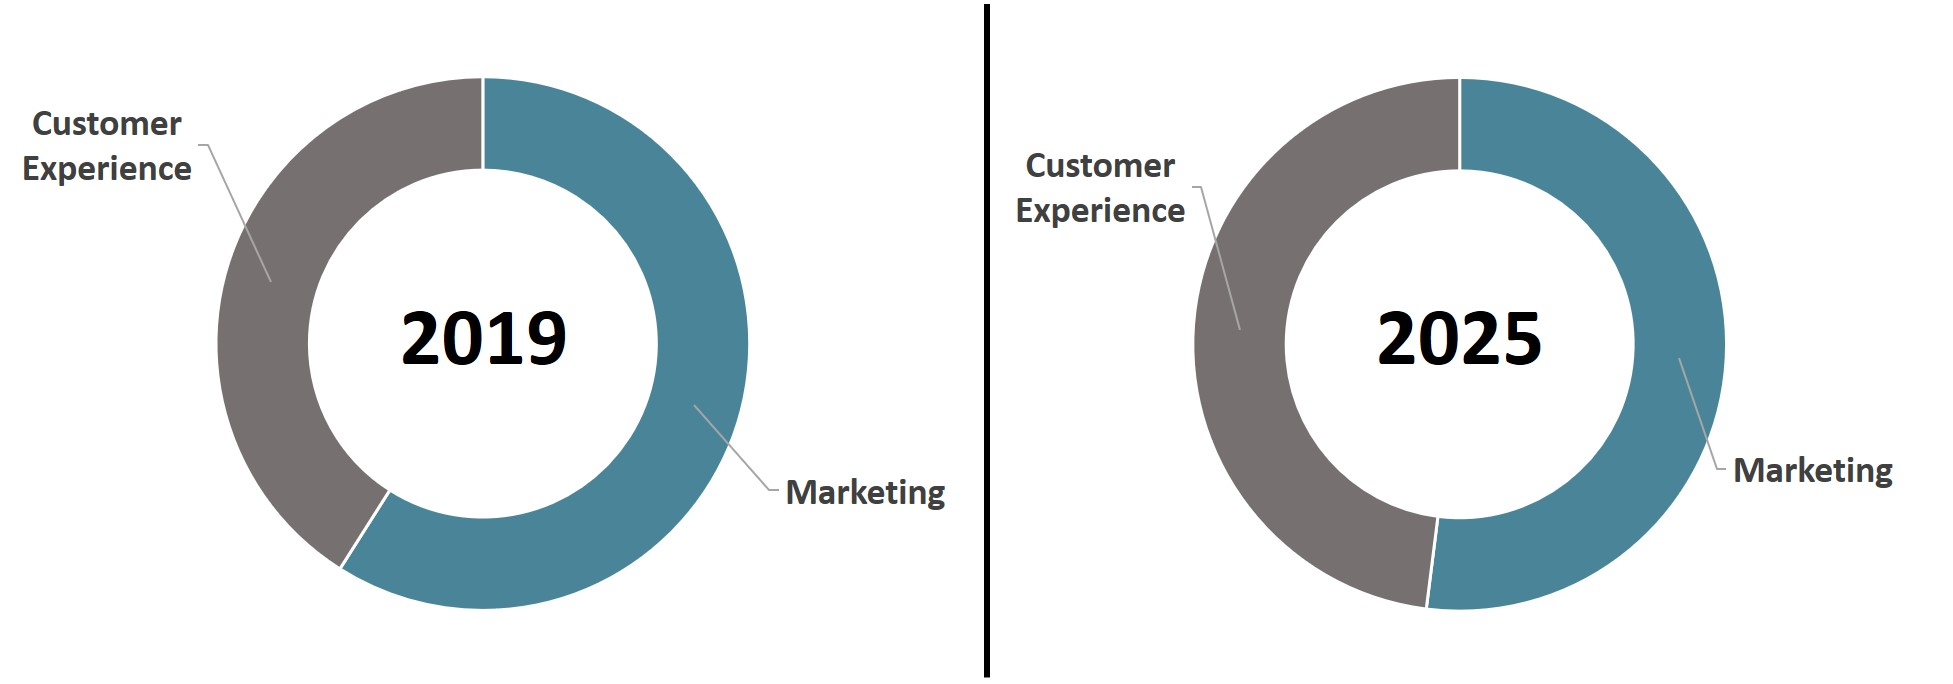 Amercias Customer Journey Analytics Market